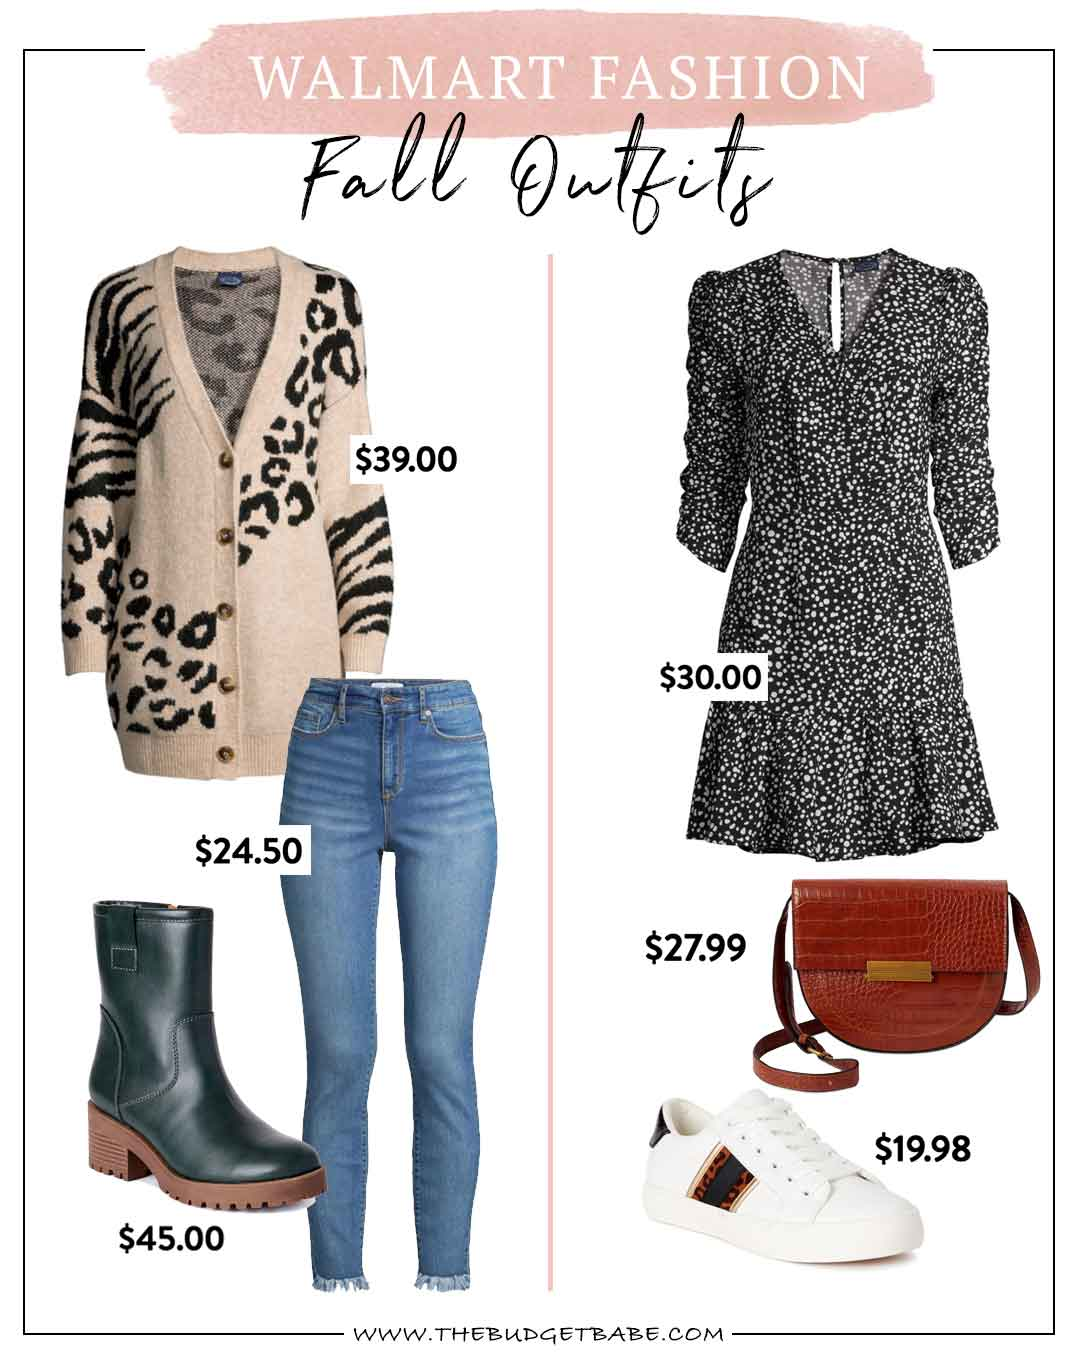 Walmart Fashion | Fall outfits on a budget with Dianna Baros, The Budget Babe blogger